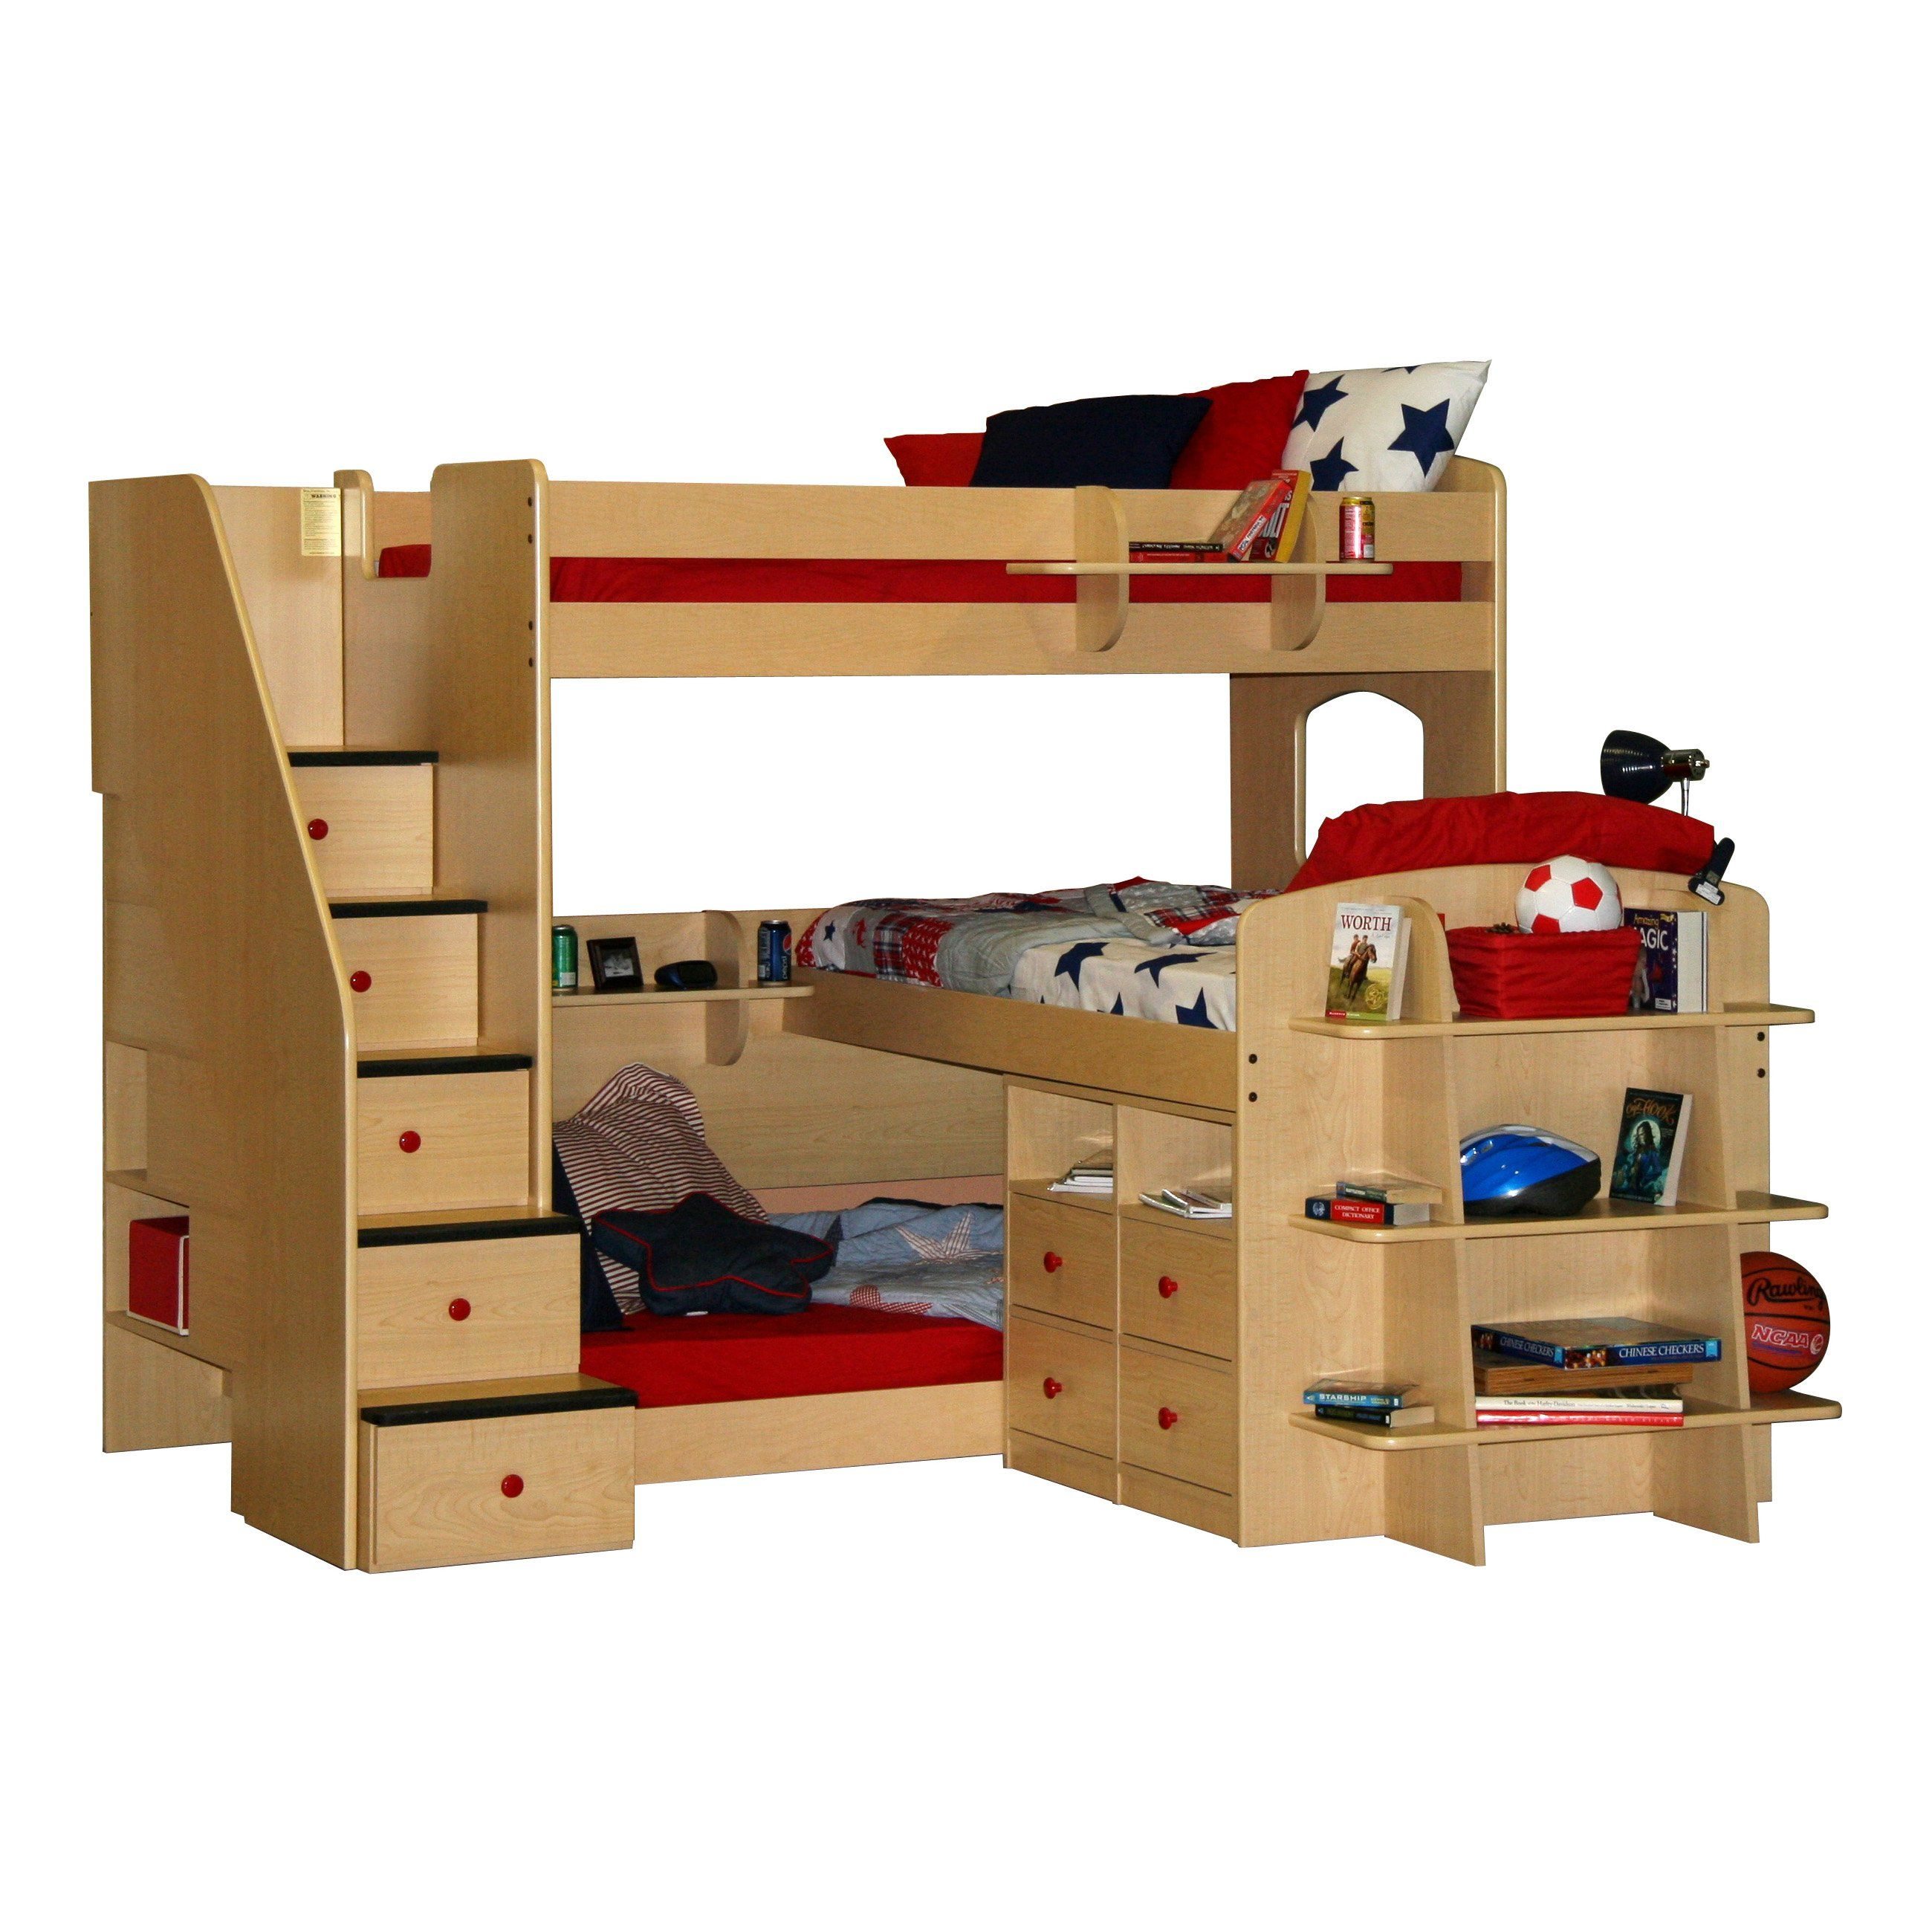 Good for triple bunk Housey things Pinterest